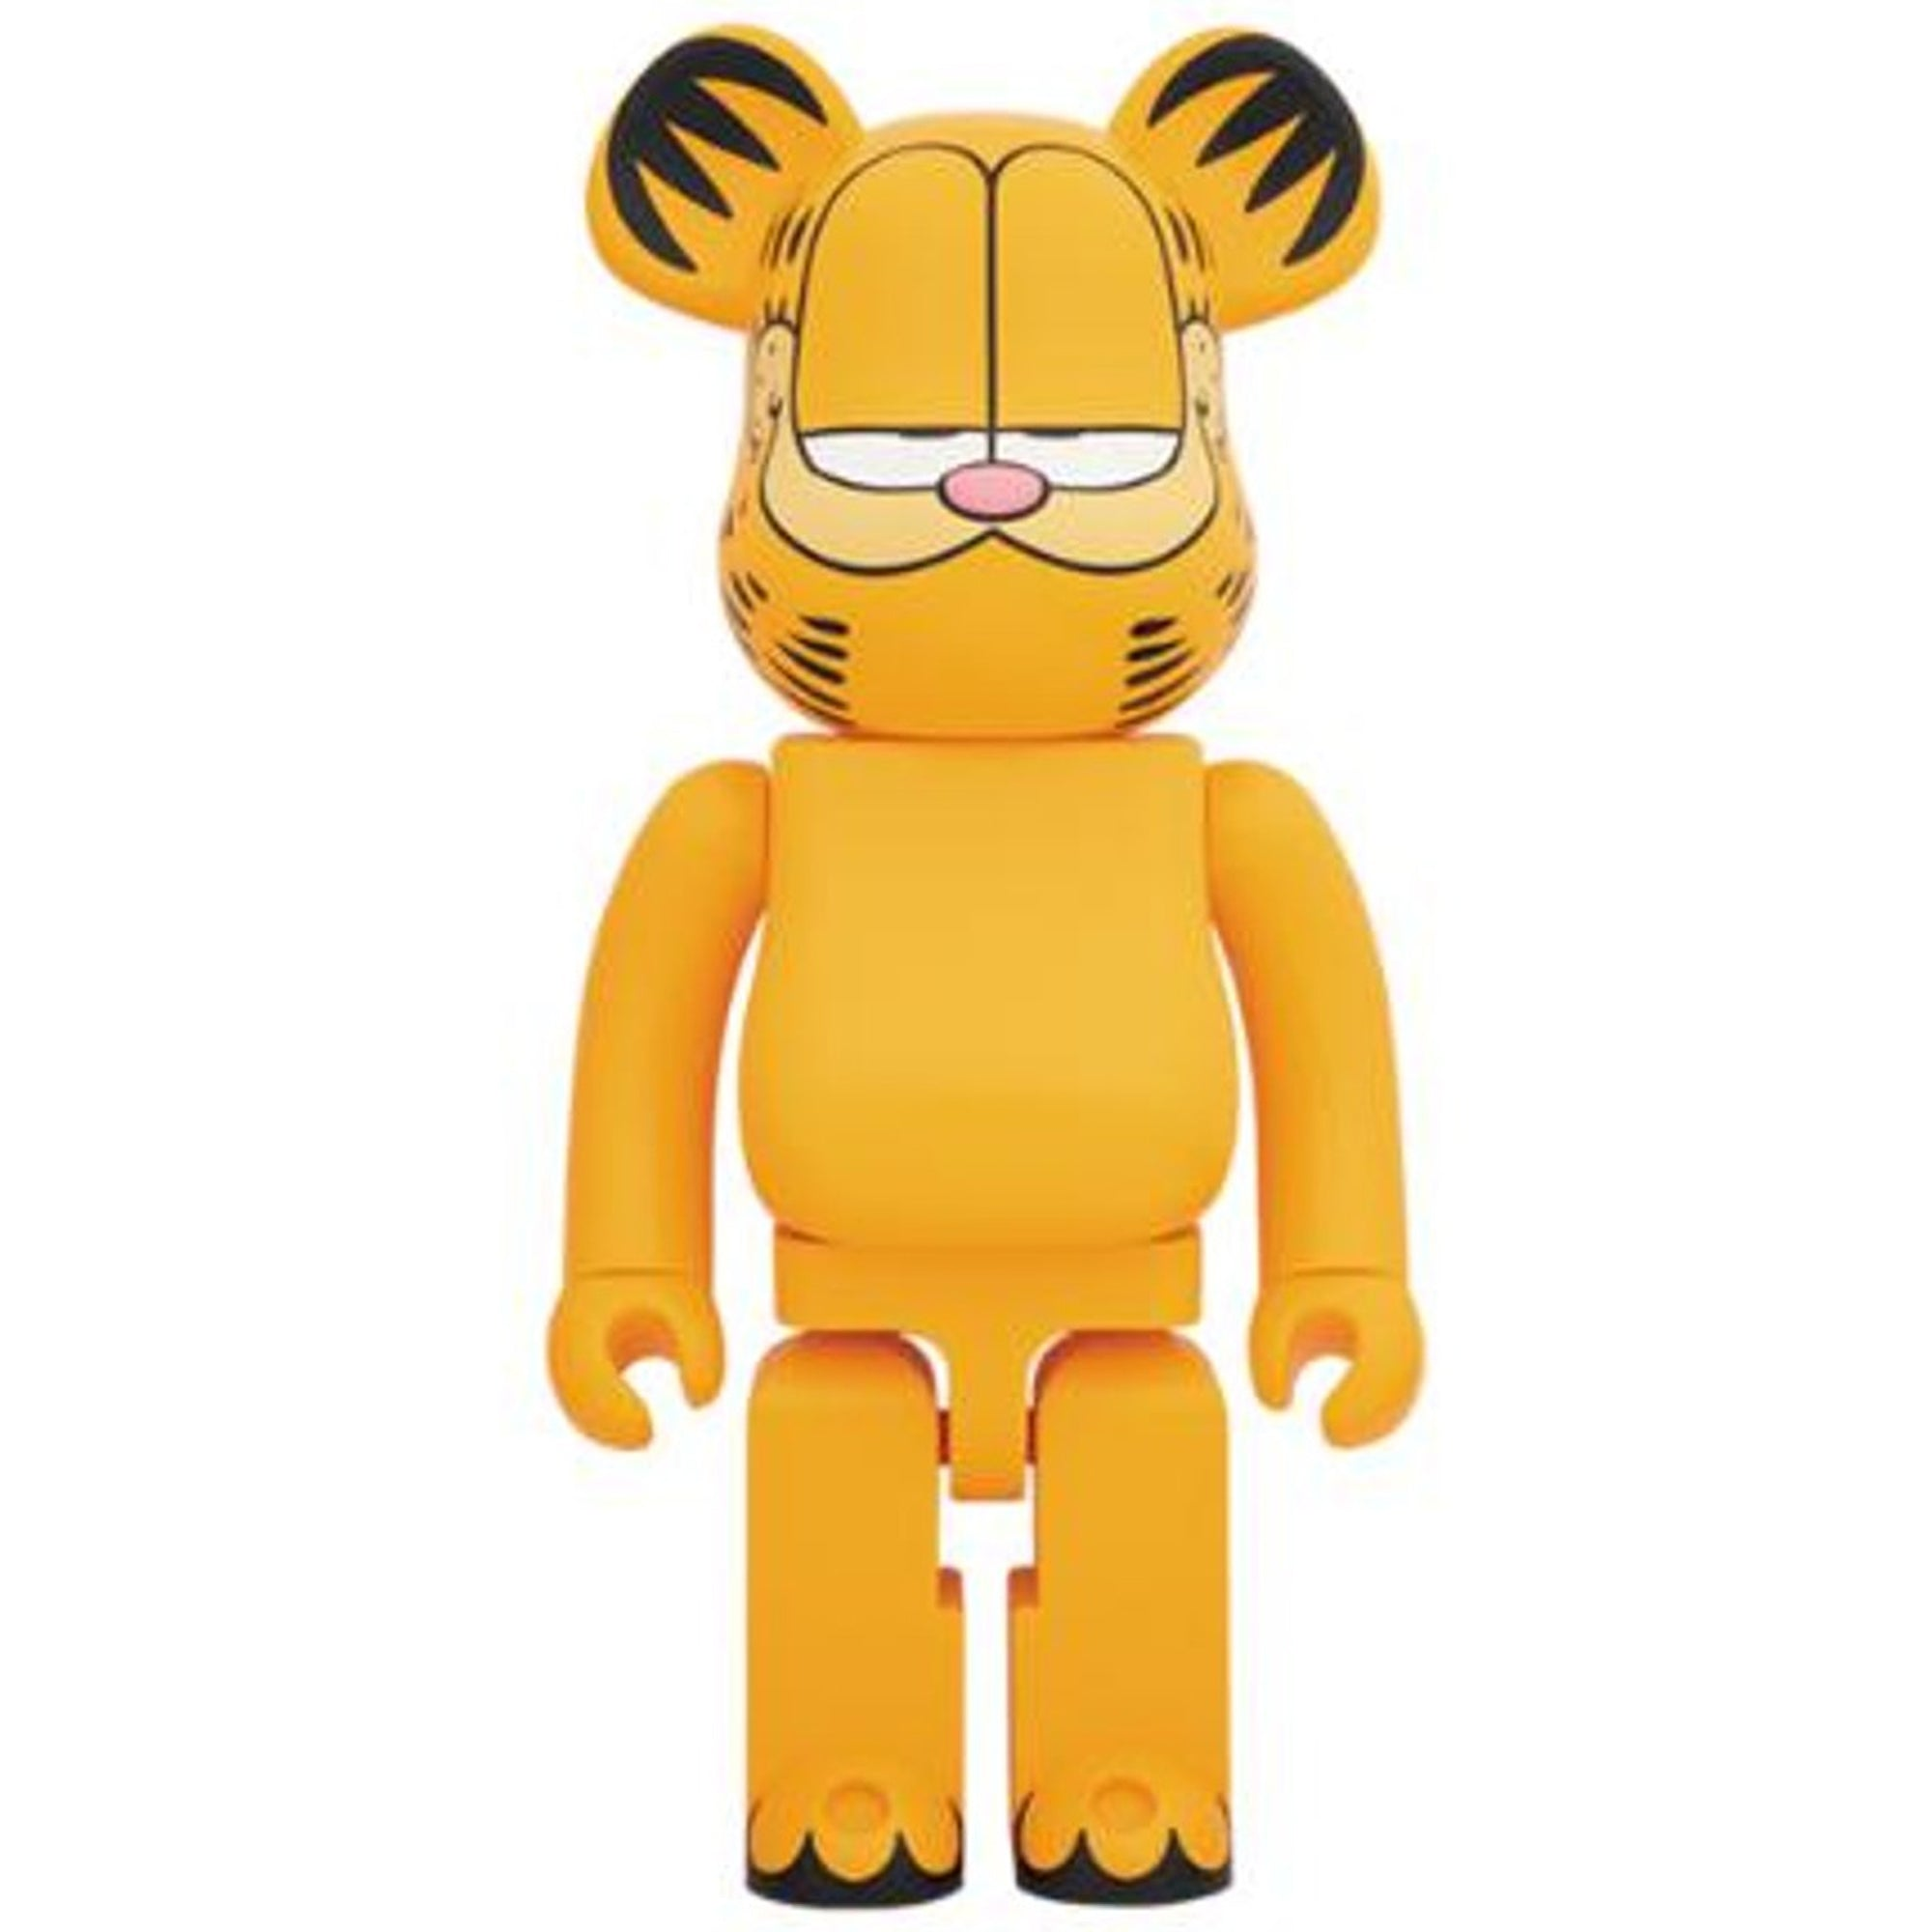 Garfield 1000% Bearbrick by Medicom Toy